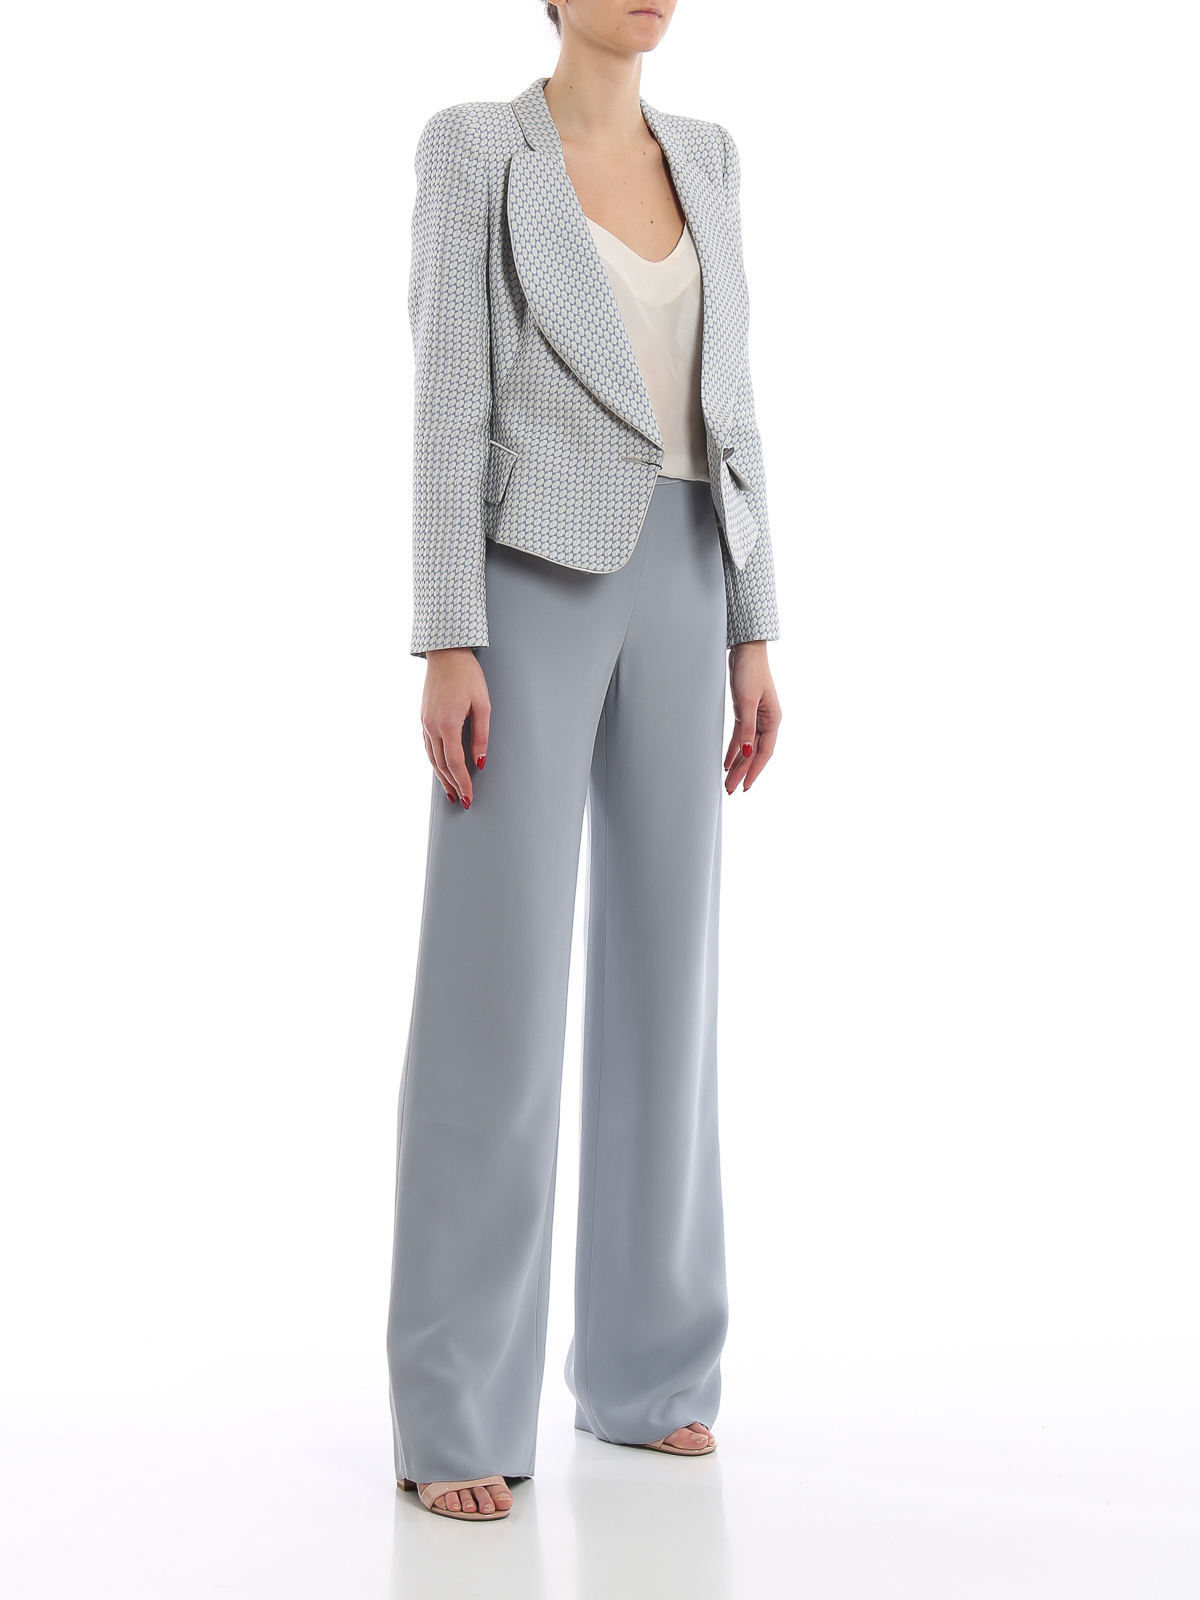 1f206fdc83 Giorgio Armani - Mulberry silk blend palazzo trousers - Tailored ...